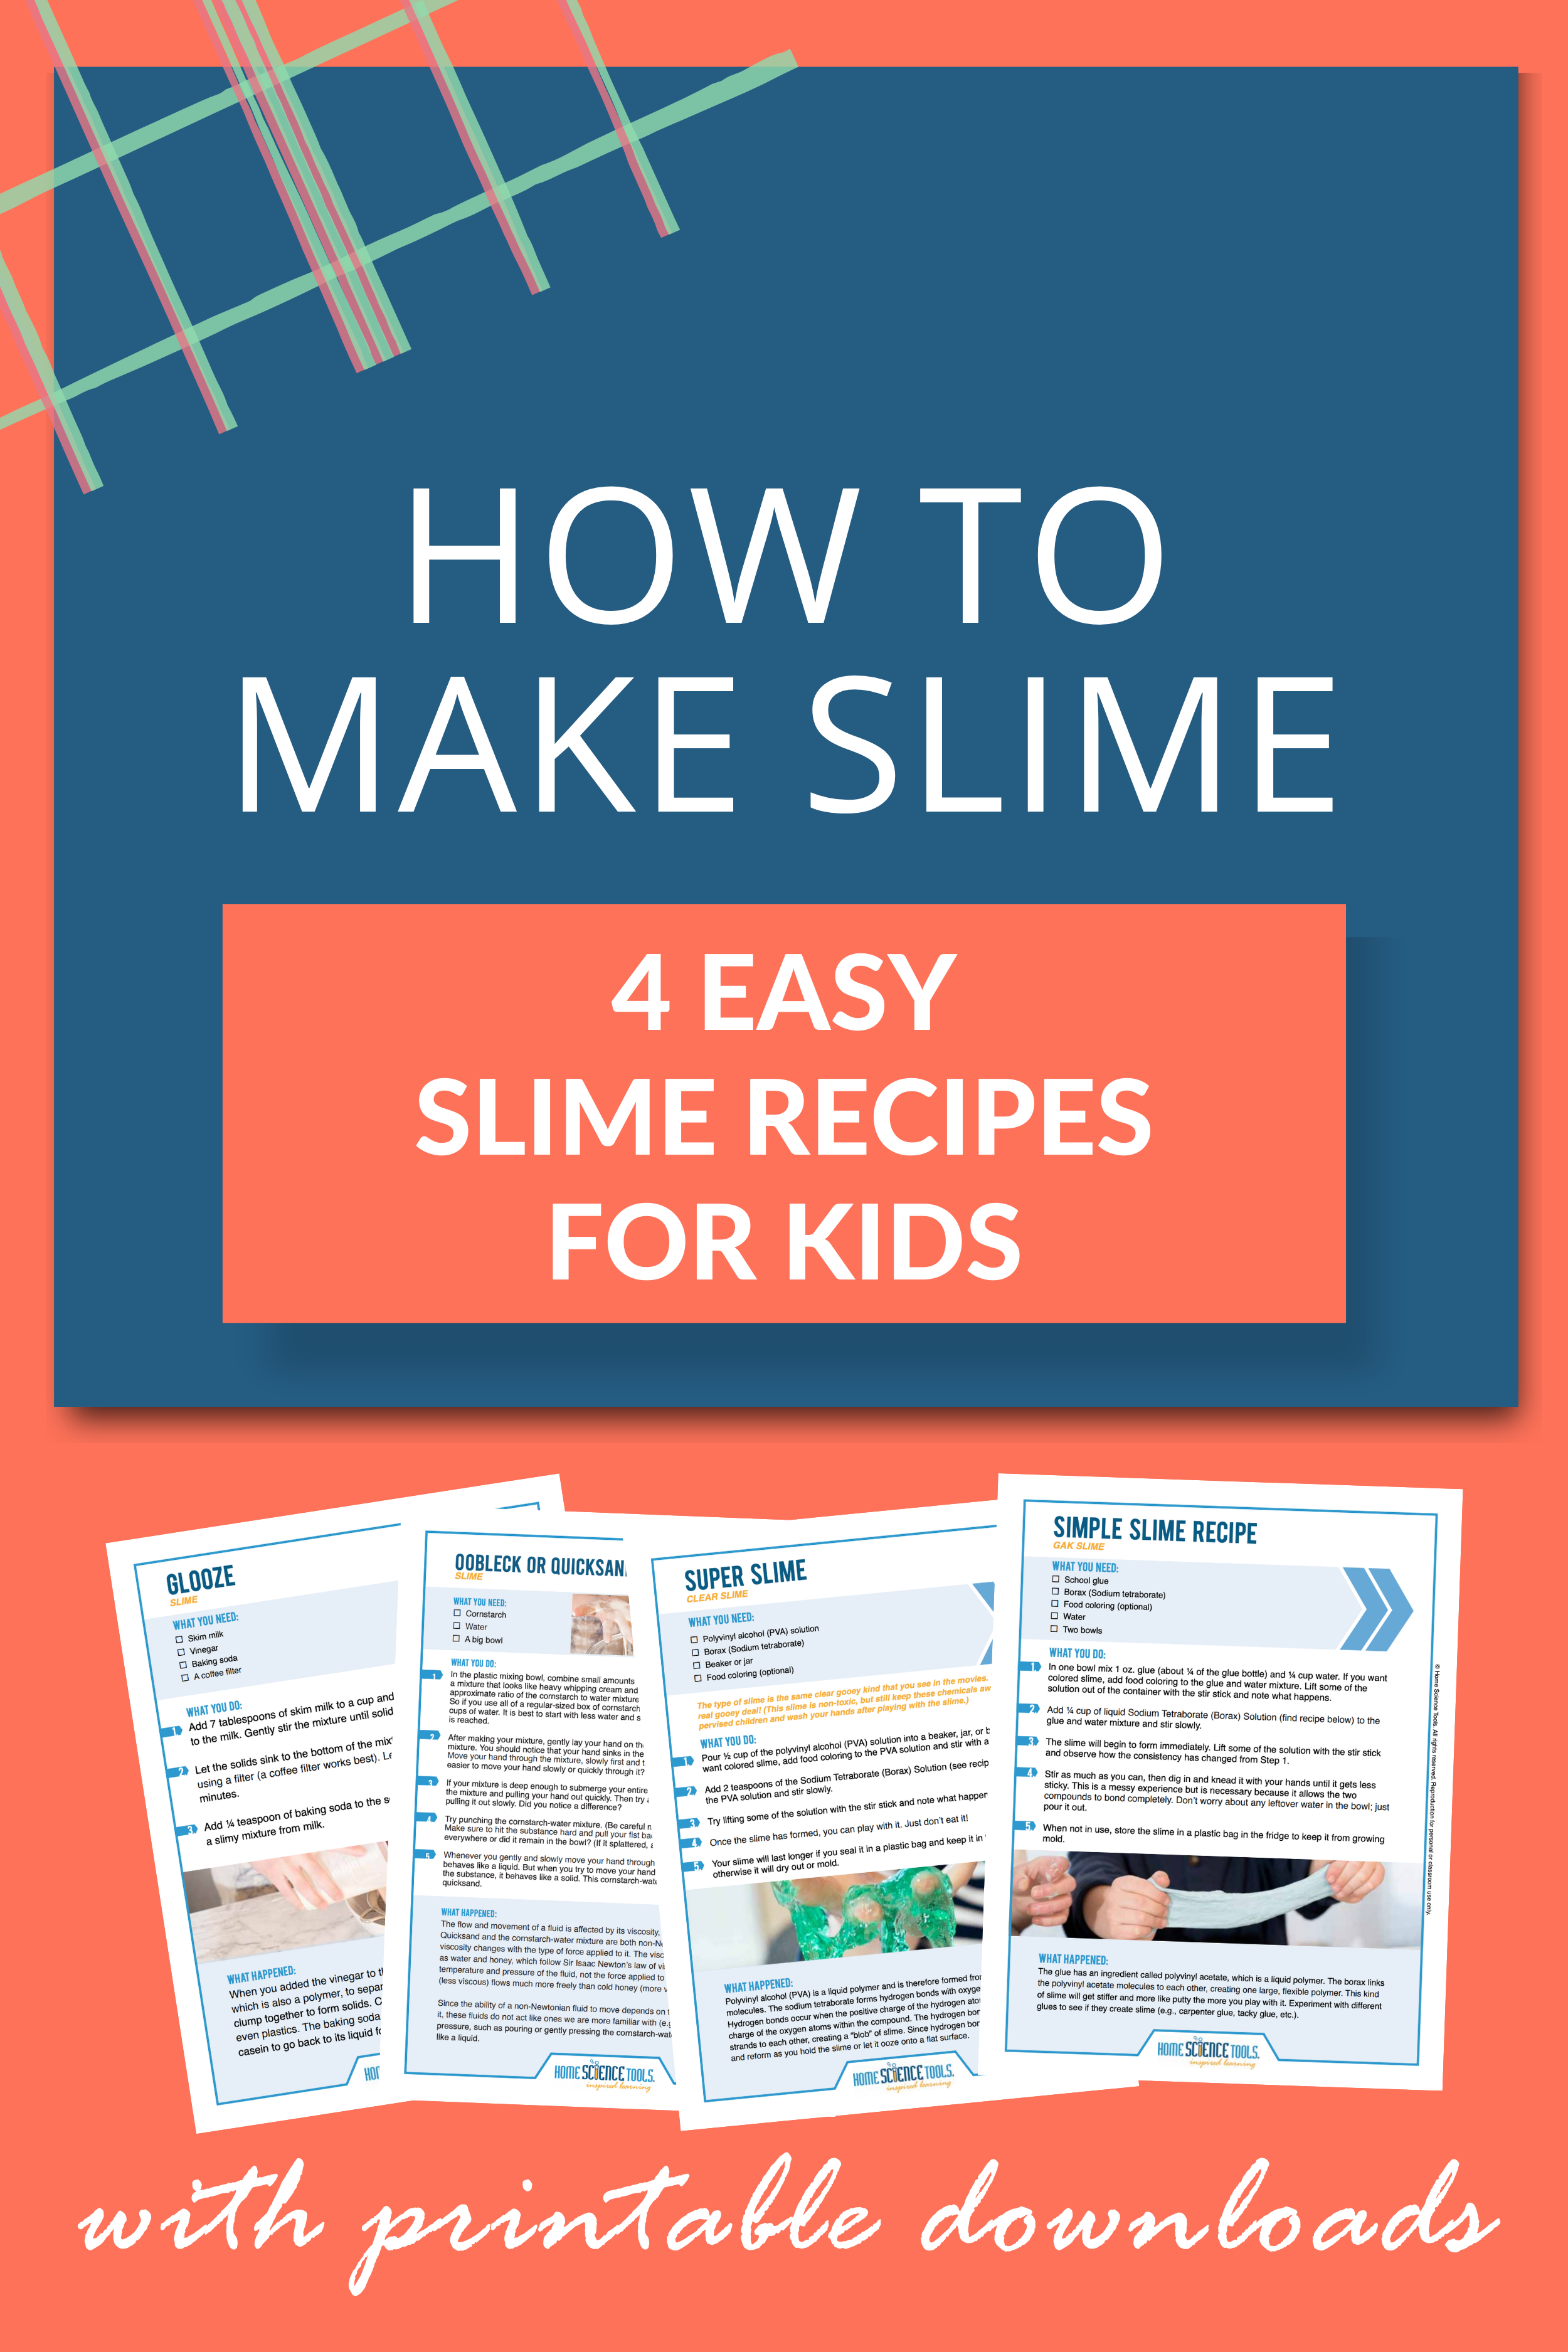 How To Make Slime Our 4 Most Popular Slime Recipes